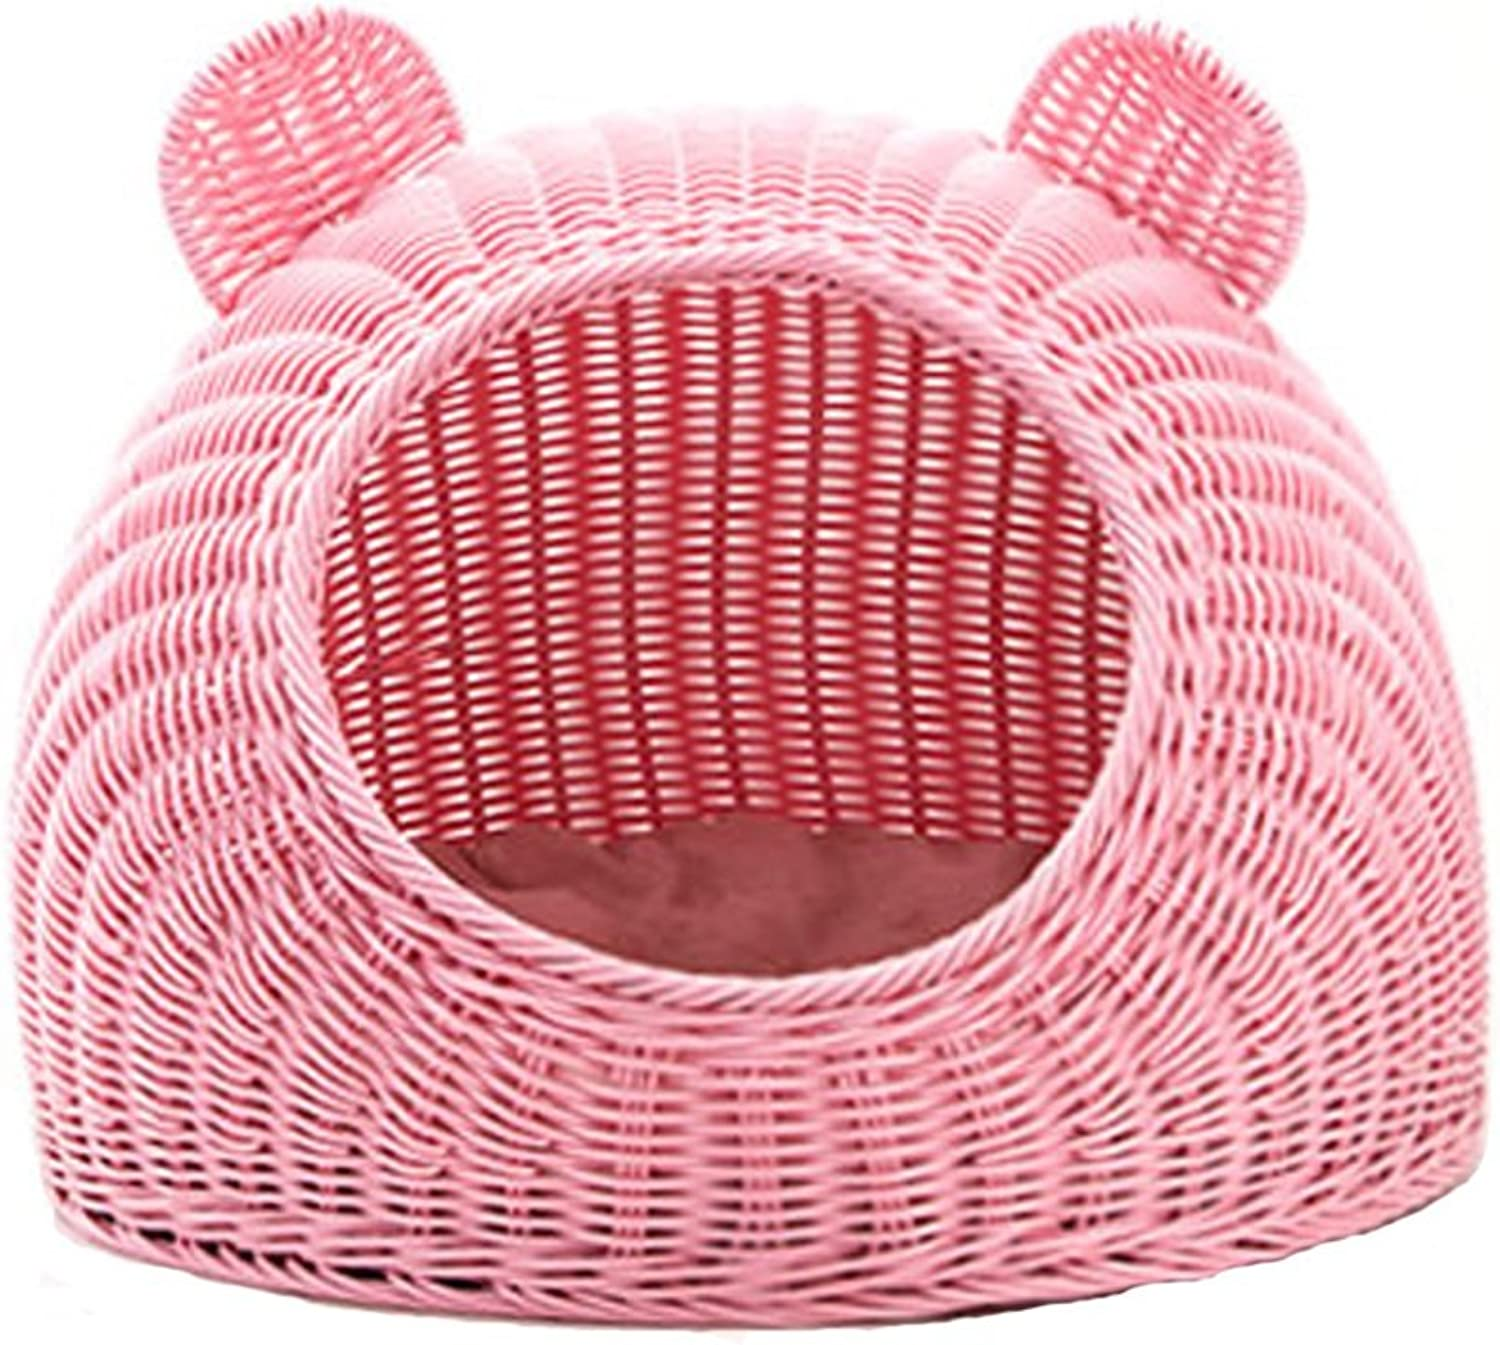 Pet bed Pet nest-Pet house Rattan Cat Nest Summer Enclosed Cat House Doghouse Pet Litter Cat Supplies Bed Mat Sleeping Bag Four Seasons Universal  & (color   PINK, Size   35 x 25 cm)